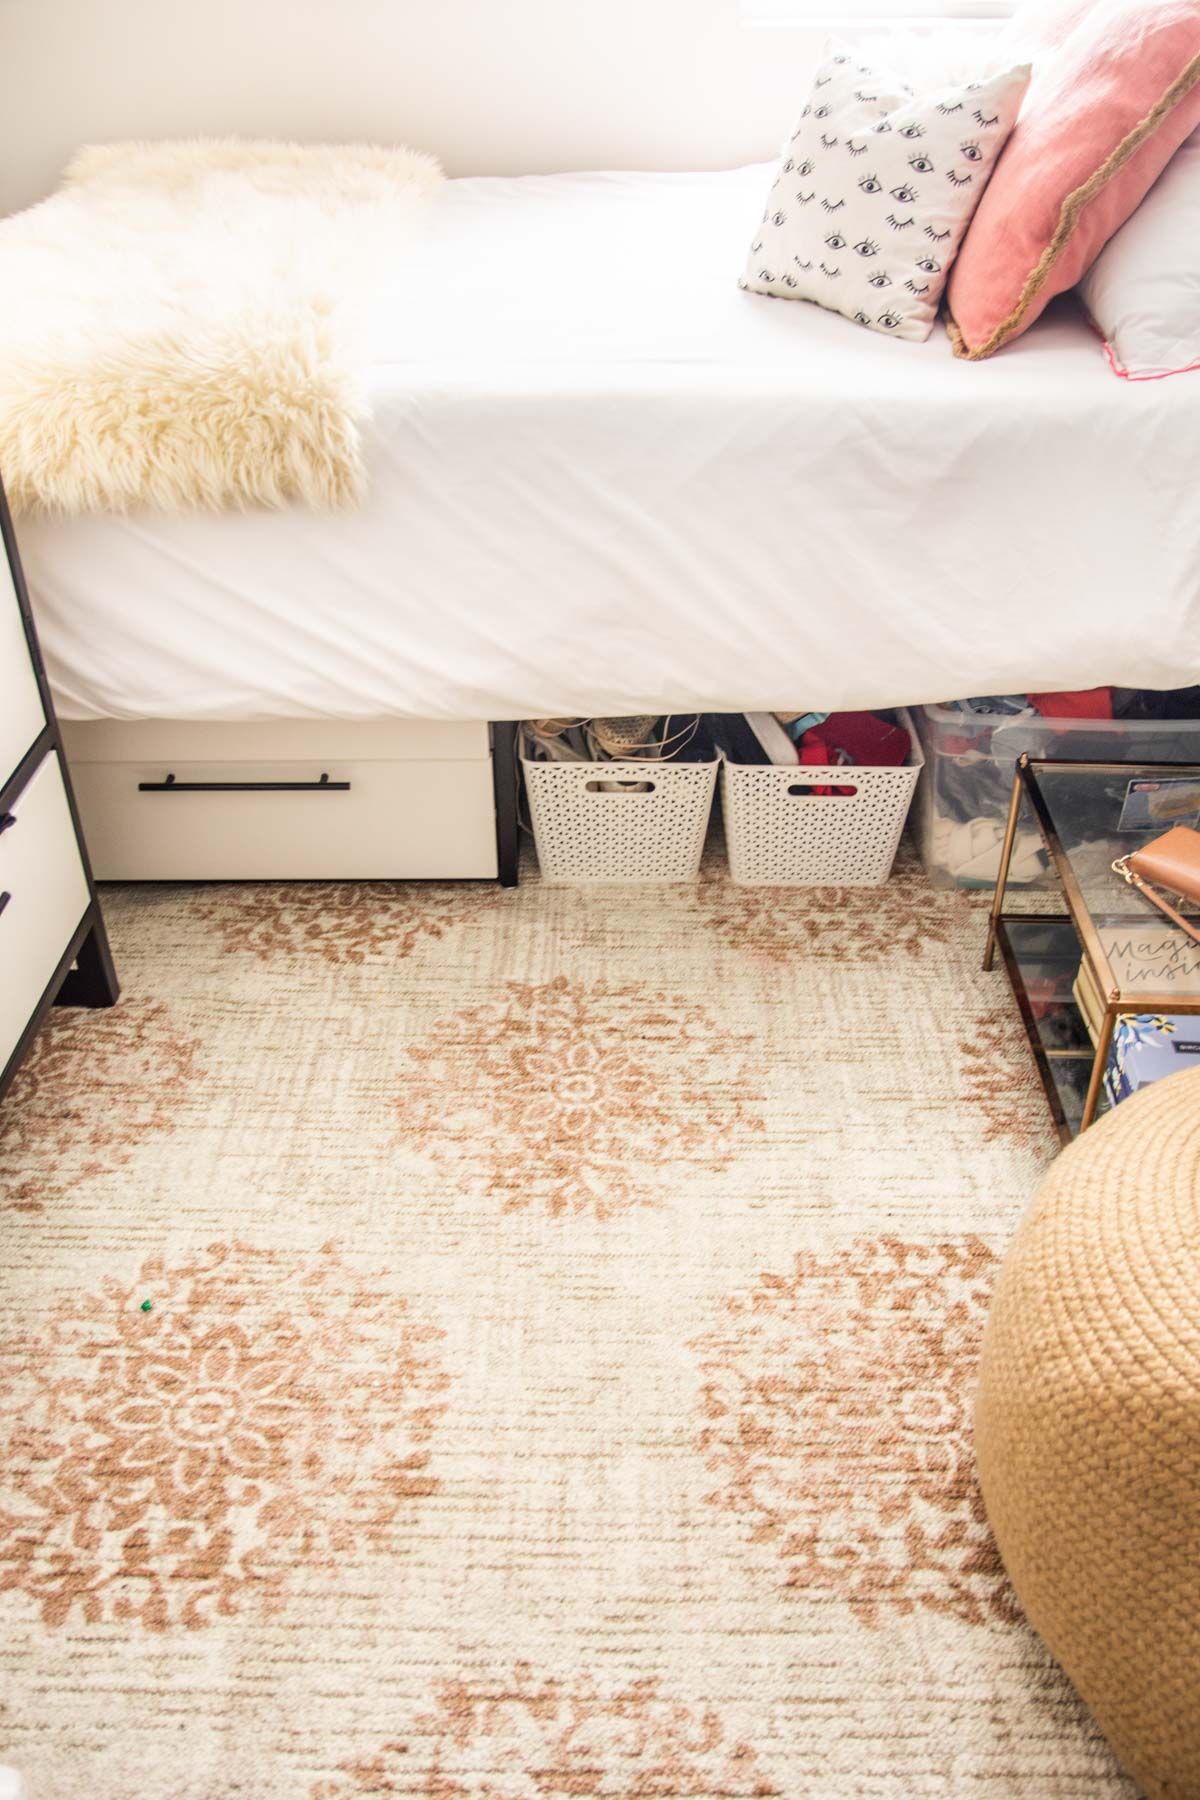 Dorm Room Rugs: Cornell Apartment: Area Rugs For Each Bedroom